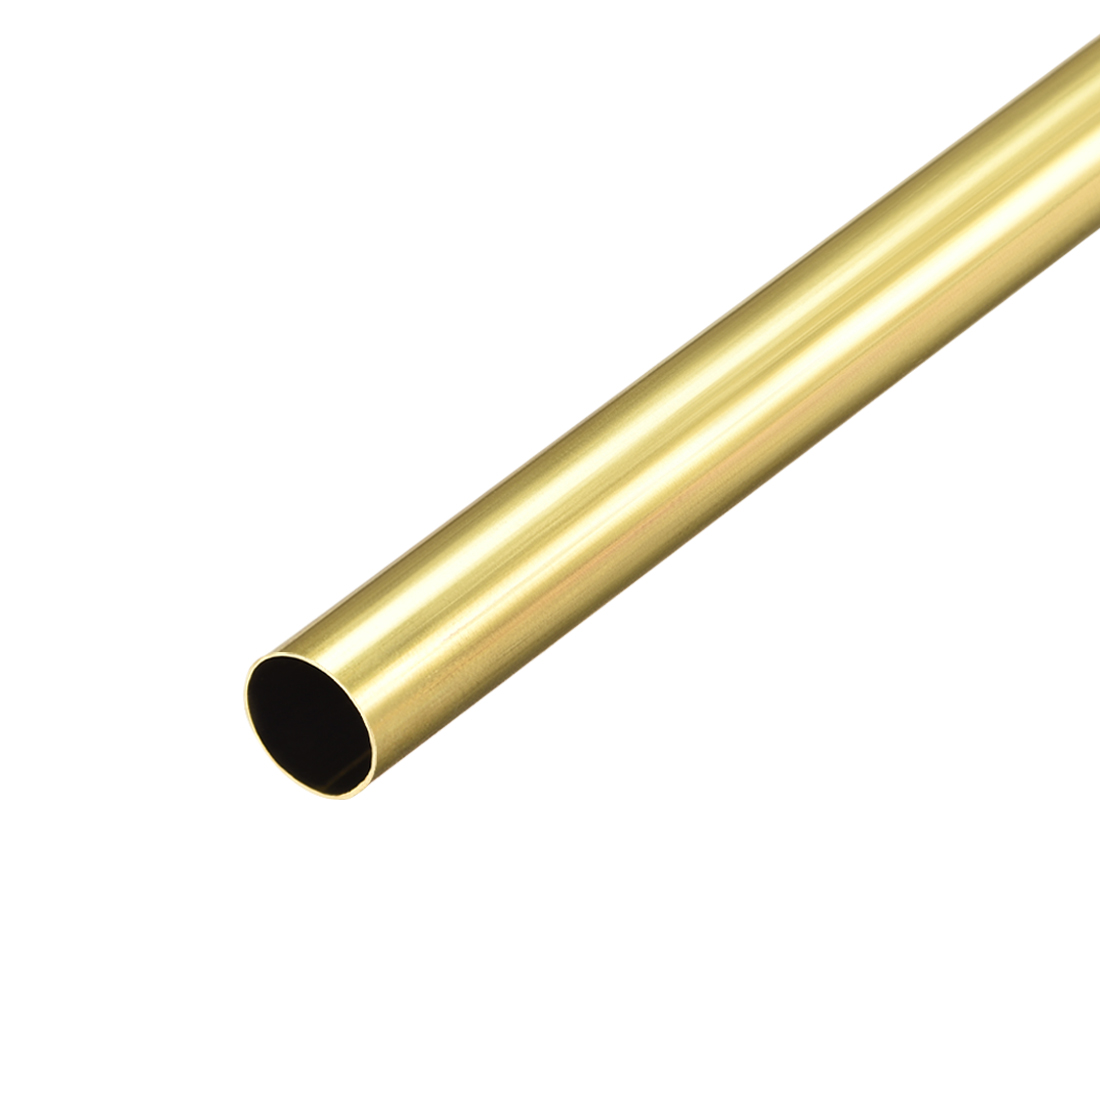 Uxcell Brass Round Tube 300mm Length 9.5mm OD 0.2mm Wall Thickness Seamless Straight Pipe Tubing